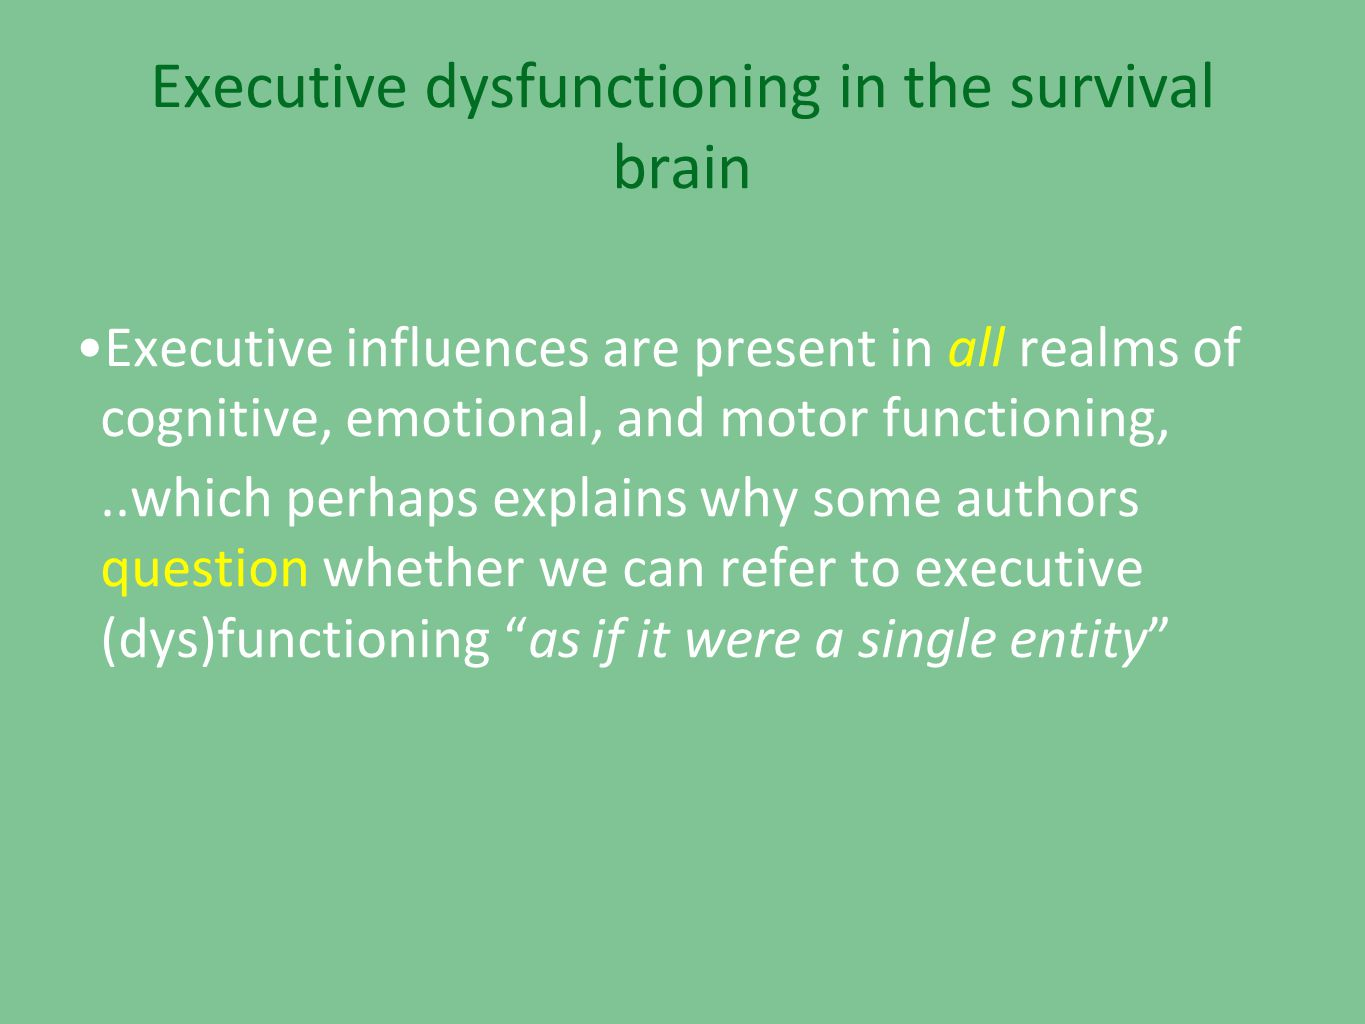 Executive dysfunctioning in the survival brain •Executive influences are present in all realms of cognitive, emotional, and motor functioning,..which perhaps explains why some authors question whether we can refer to executive (dys)functioning as if it were a single entity